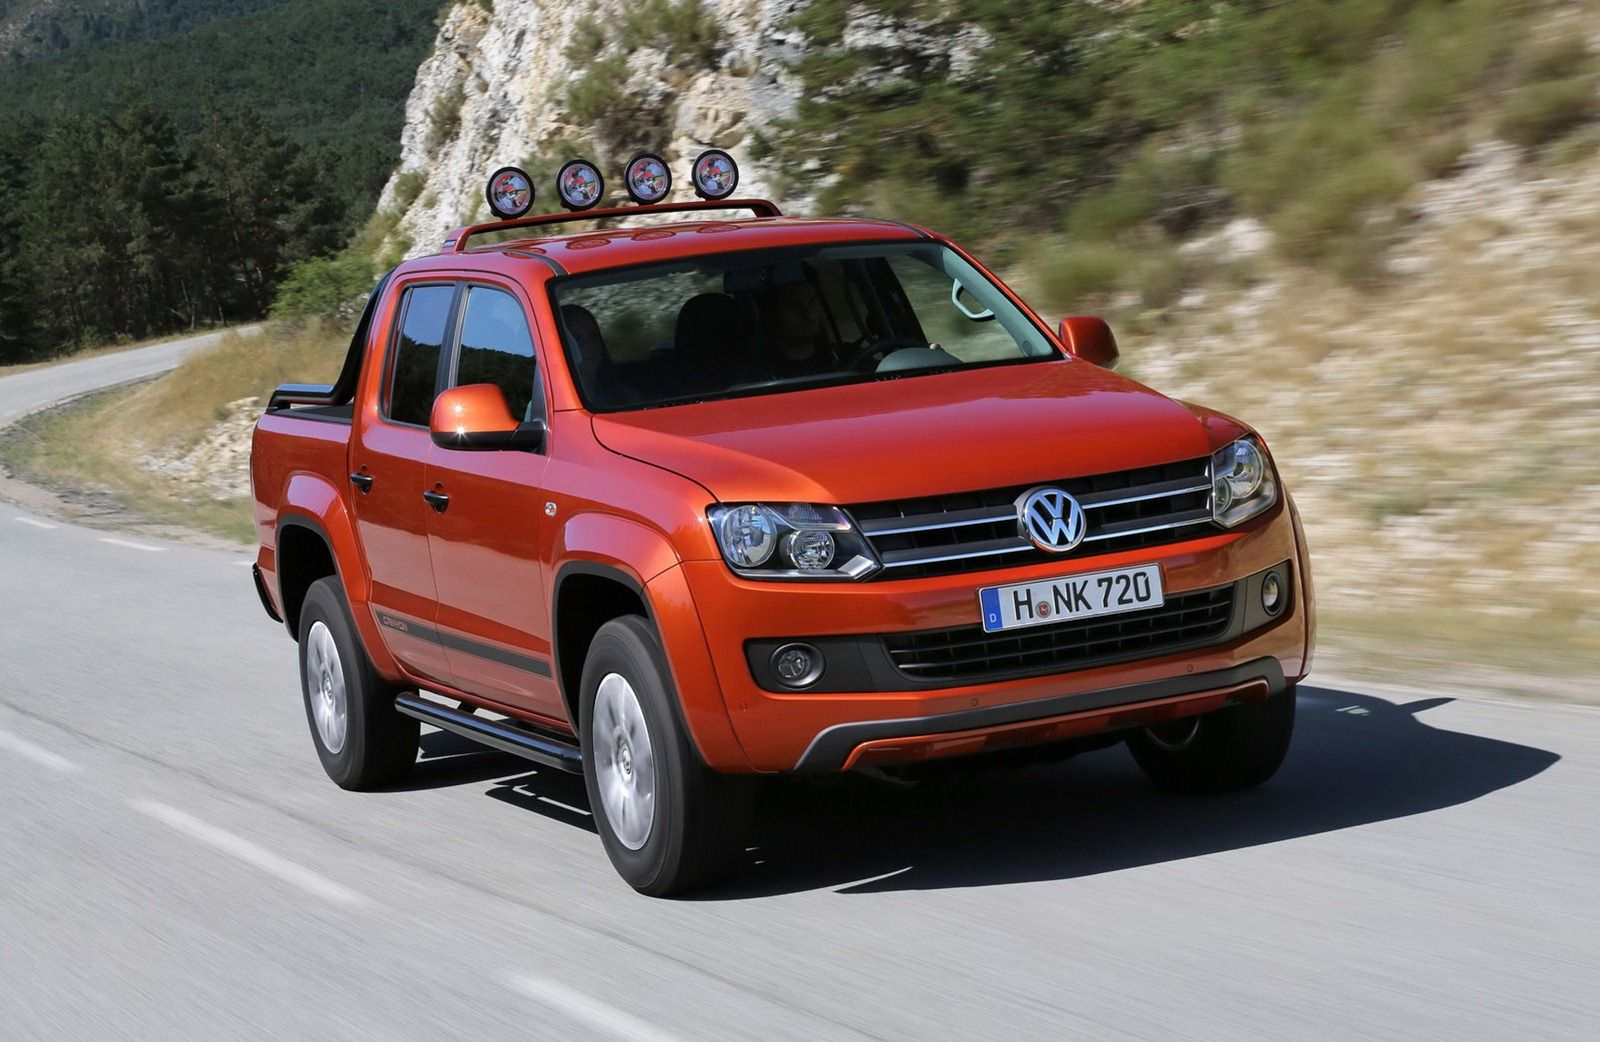 volkswagen amarok canyon pomara czowy szpaner news. Black Bedroom Furniture Sets. Home Design Ideas